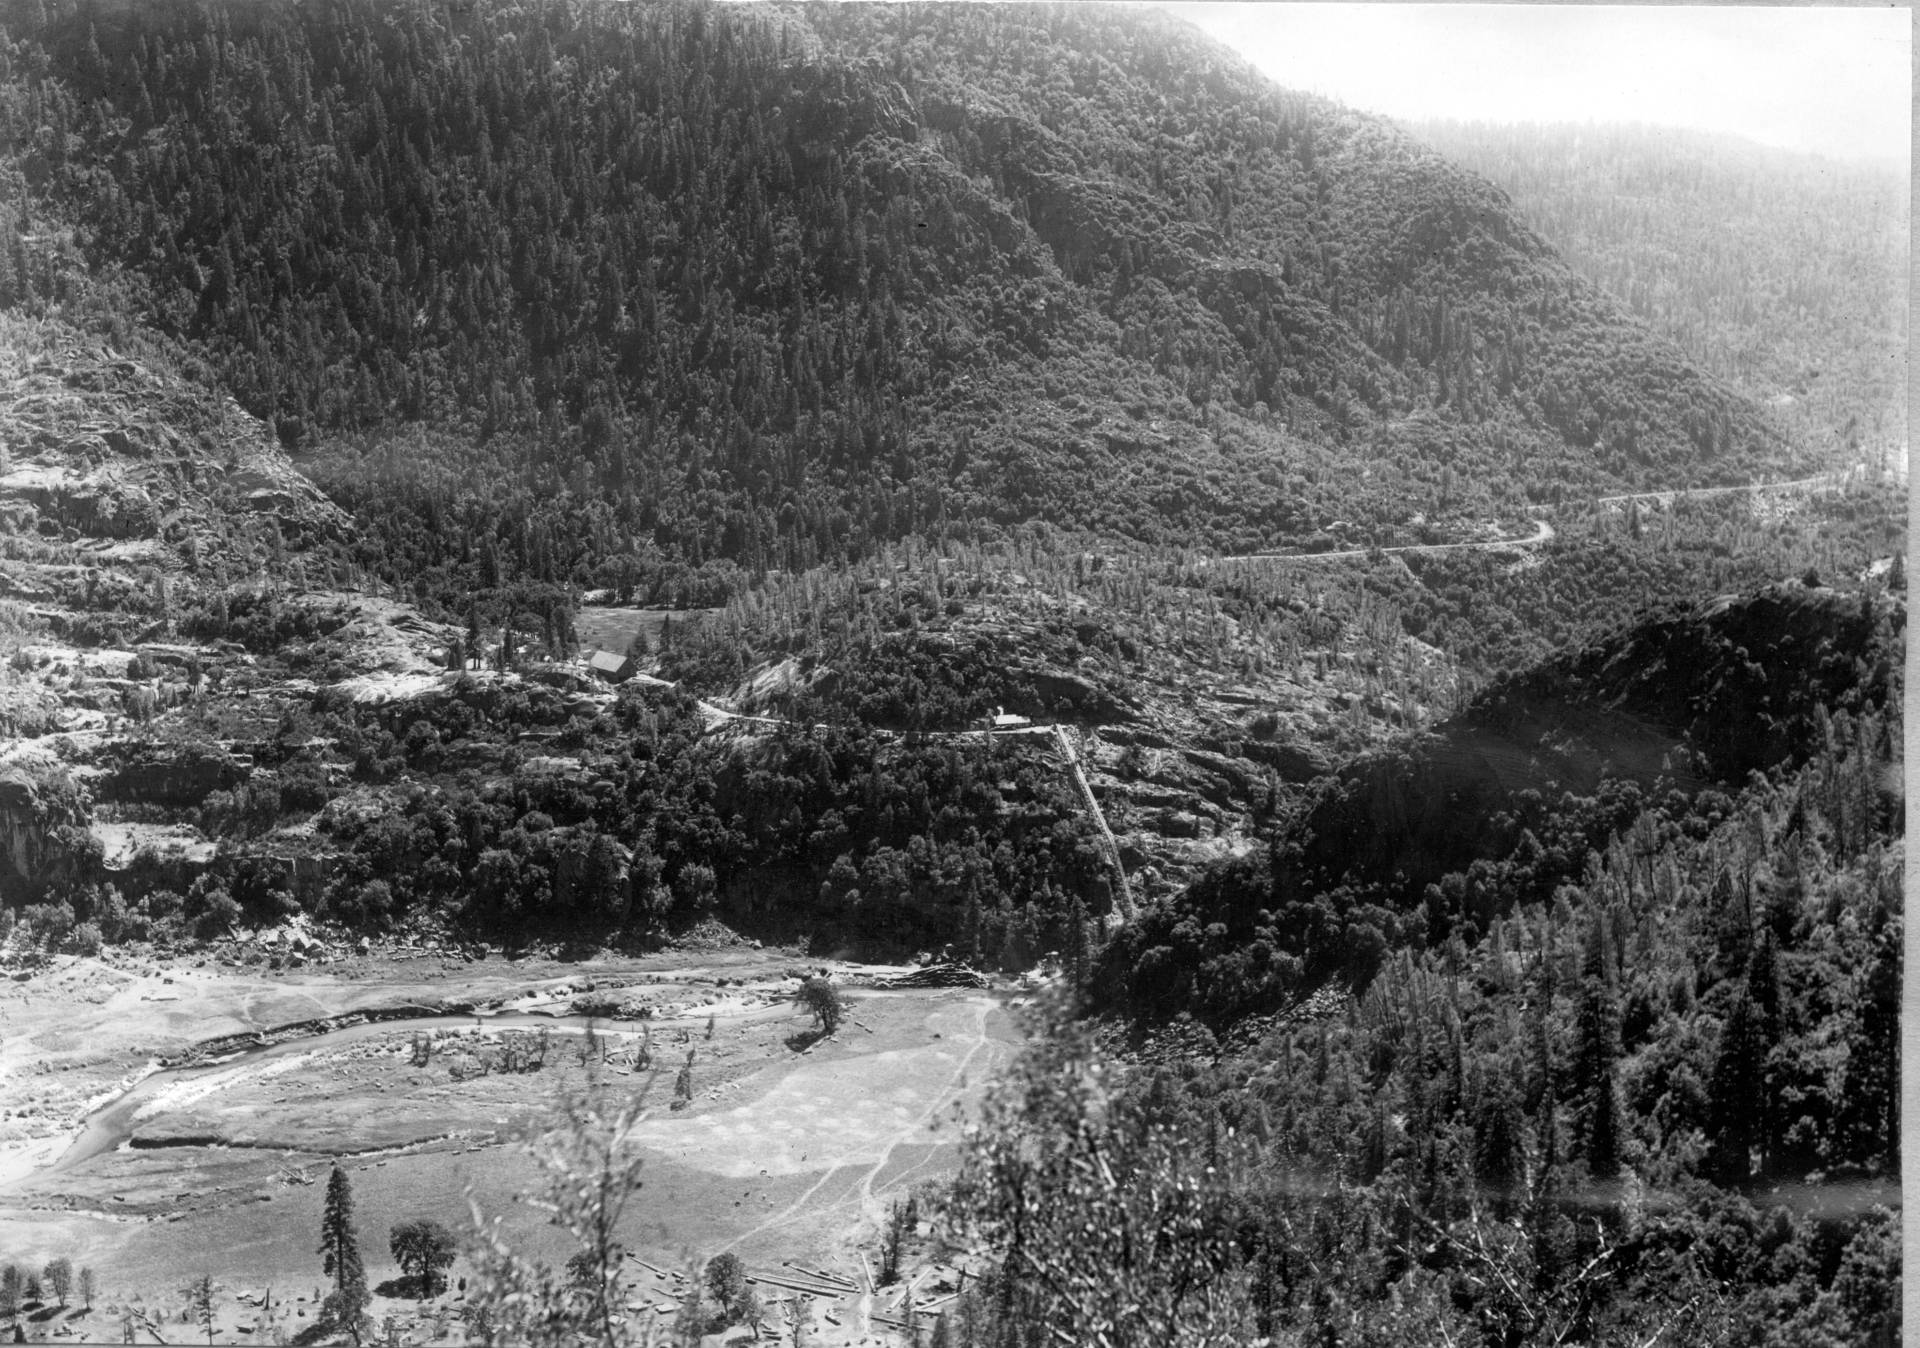 View across Hetch Hetchy Valley, early 1900s, from the southwestern end, showing the Tuolumne River flowing through the lower portion of the valley prior to damming. Isaiah West Taber/ Sierra Club Bulletin/ Public Domain